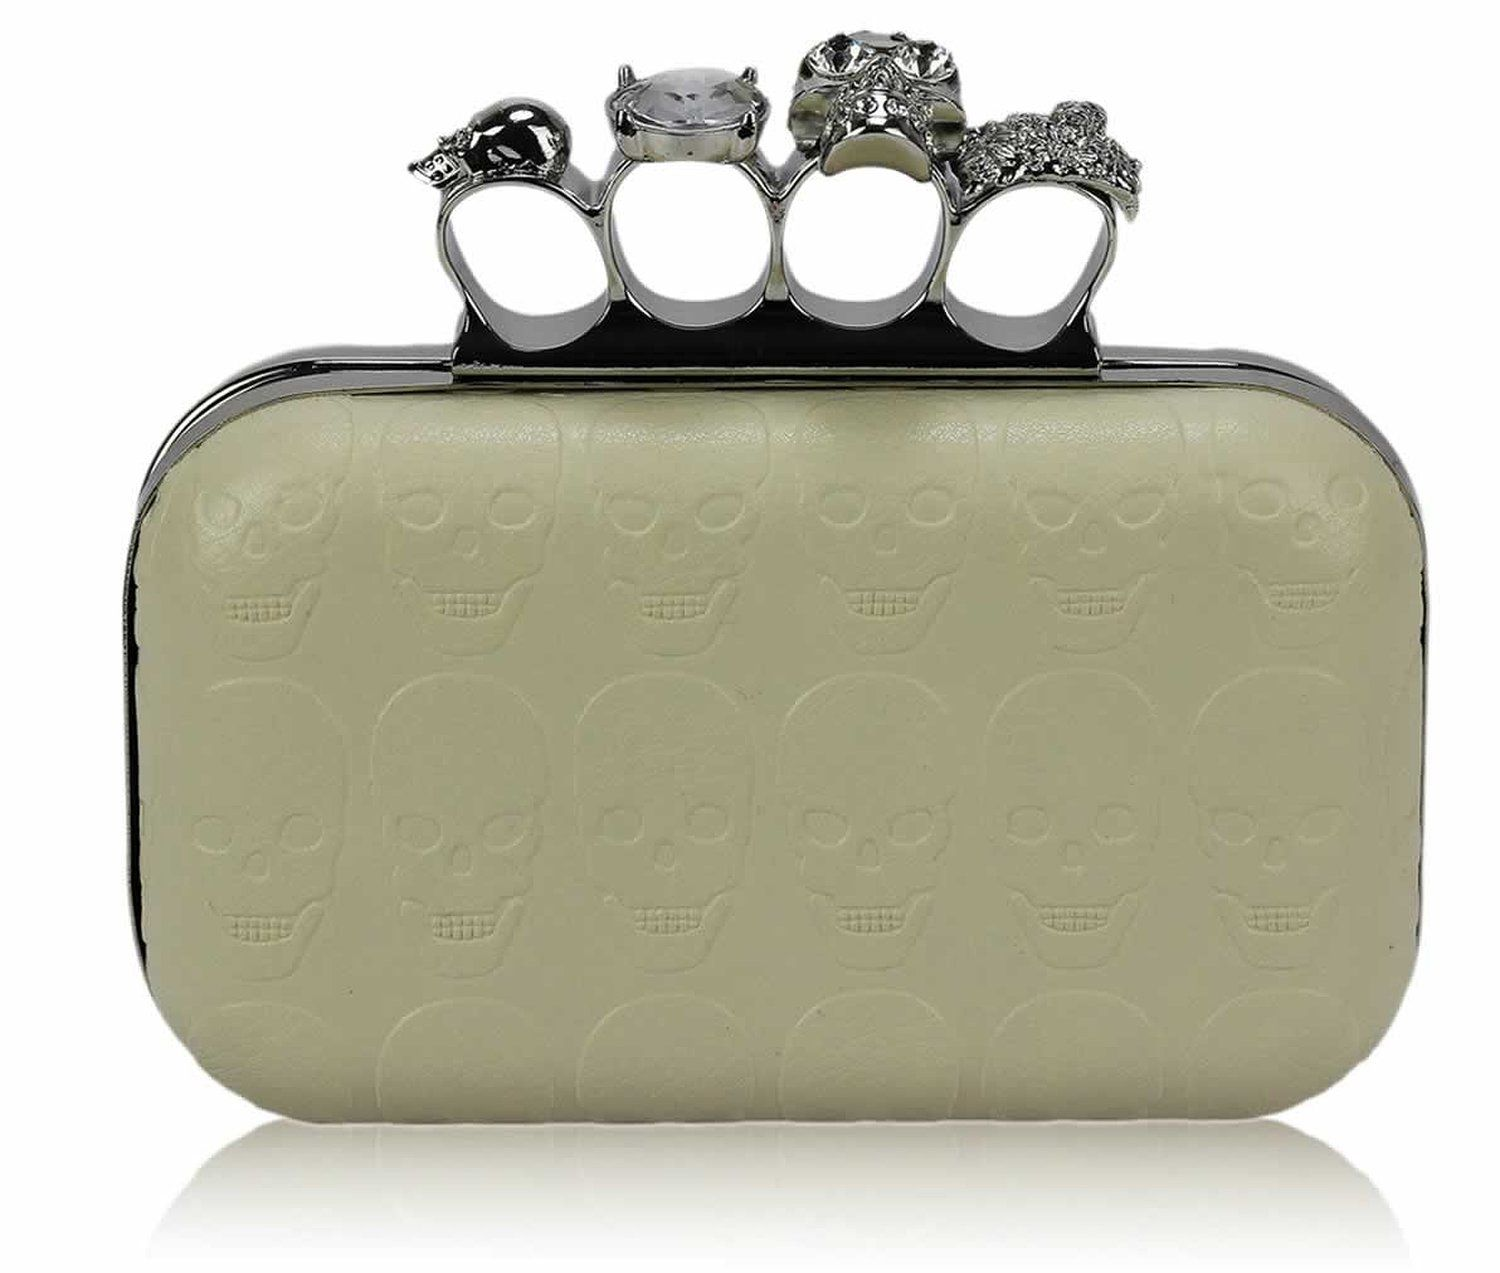 Ladies Ivory Skull Print Skulls Knuckles Rings Clutch Evening Bag: Amazon.co.uk: Shoes & Bags